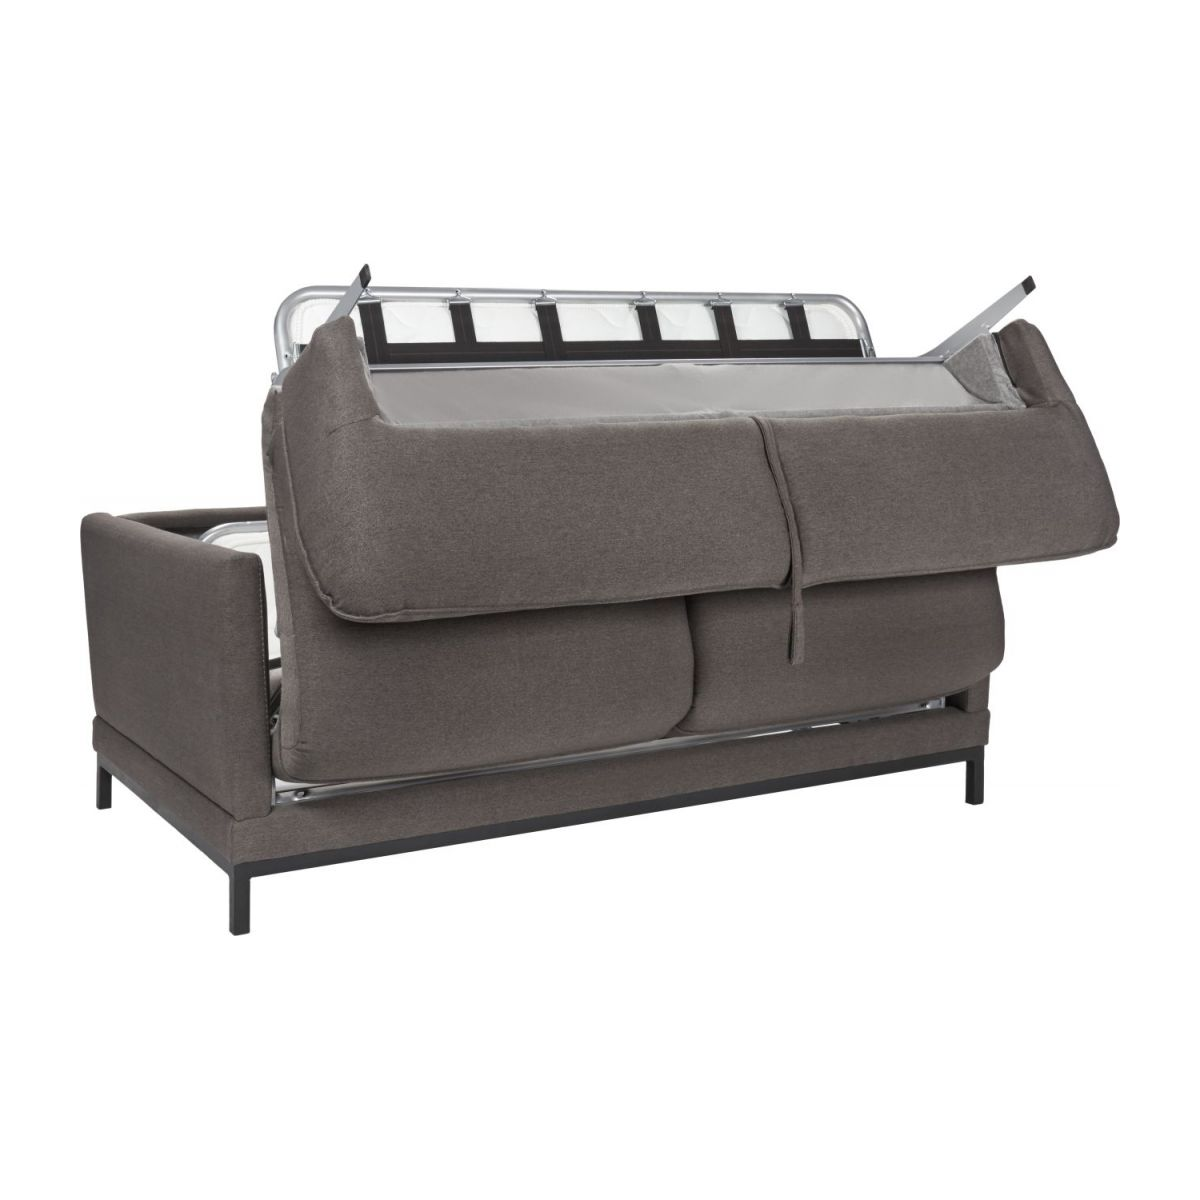 Fabric 3-seater sofa bed, grey n°2